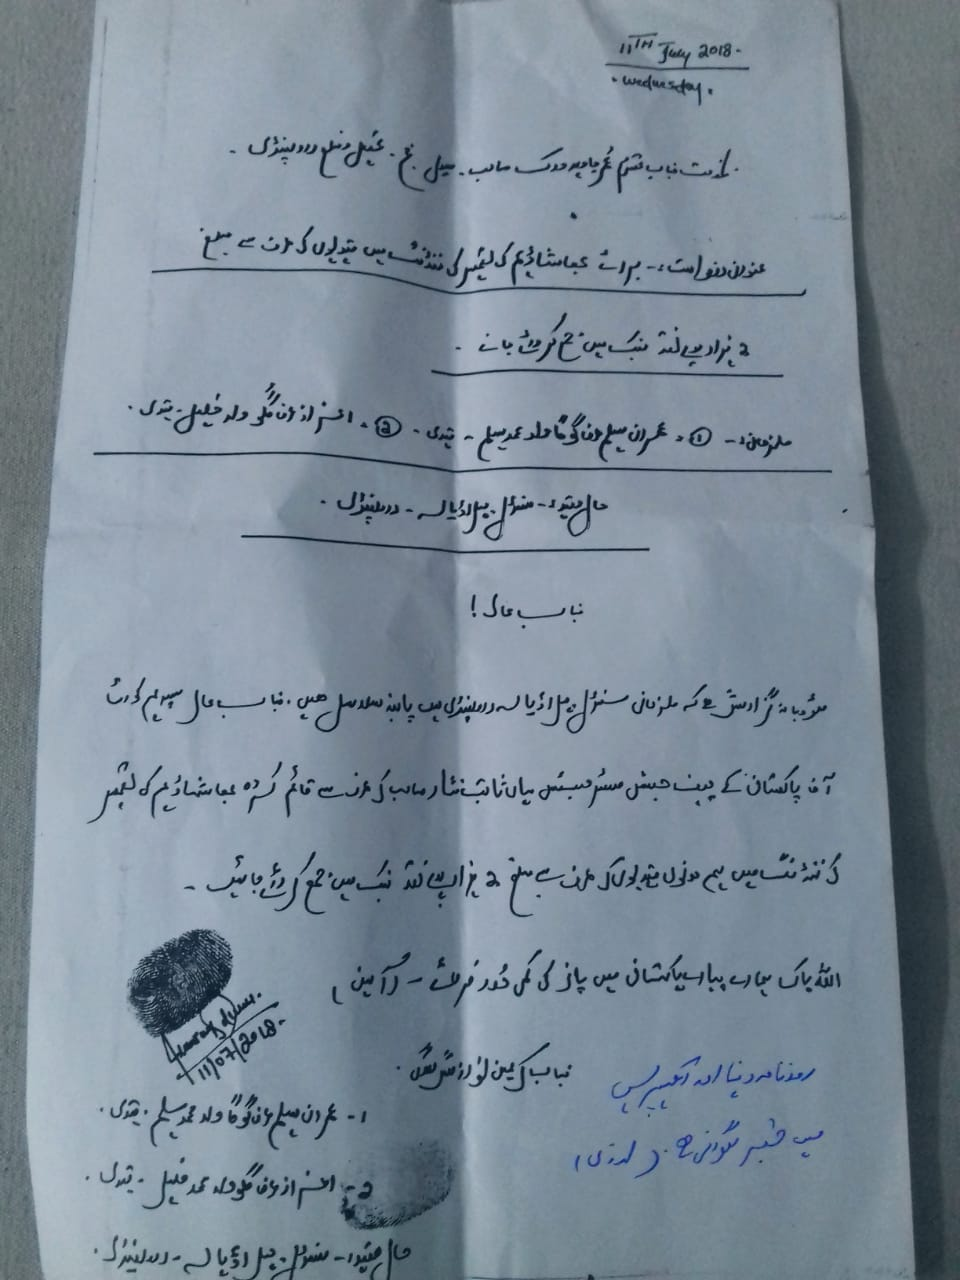 Application of submission of funds of two two thousand rupees of Adiala jail Rawalpindi prisoners Imran Saleem Goga and Aizaz urf Gullu to civil judge, Mr. Omar Javed wark for making dam campaign